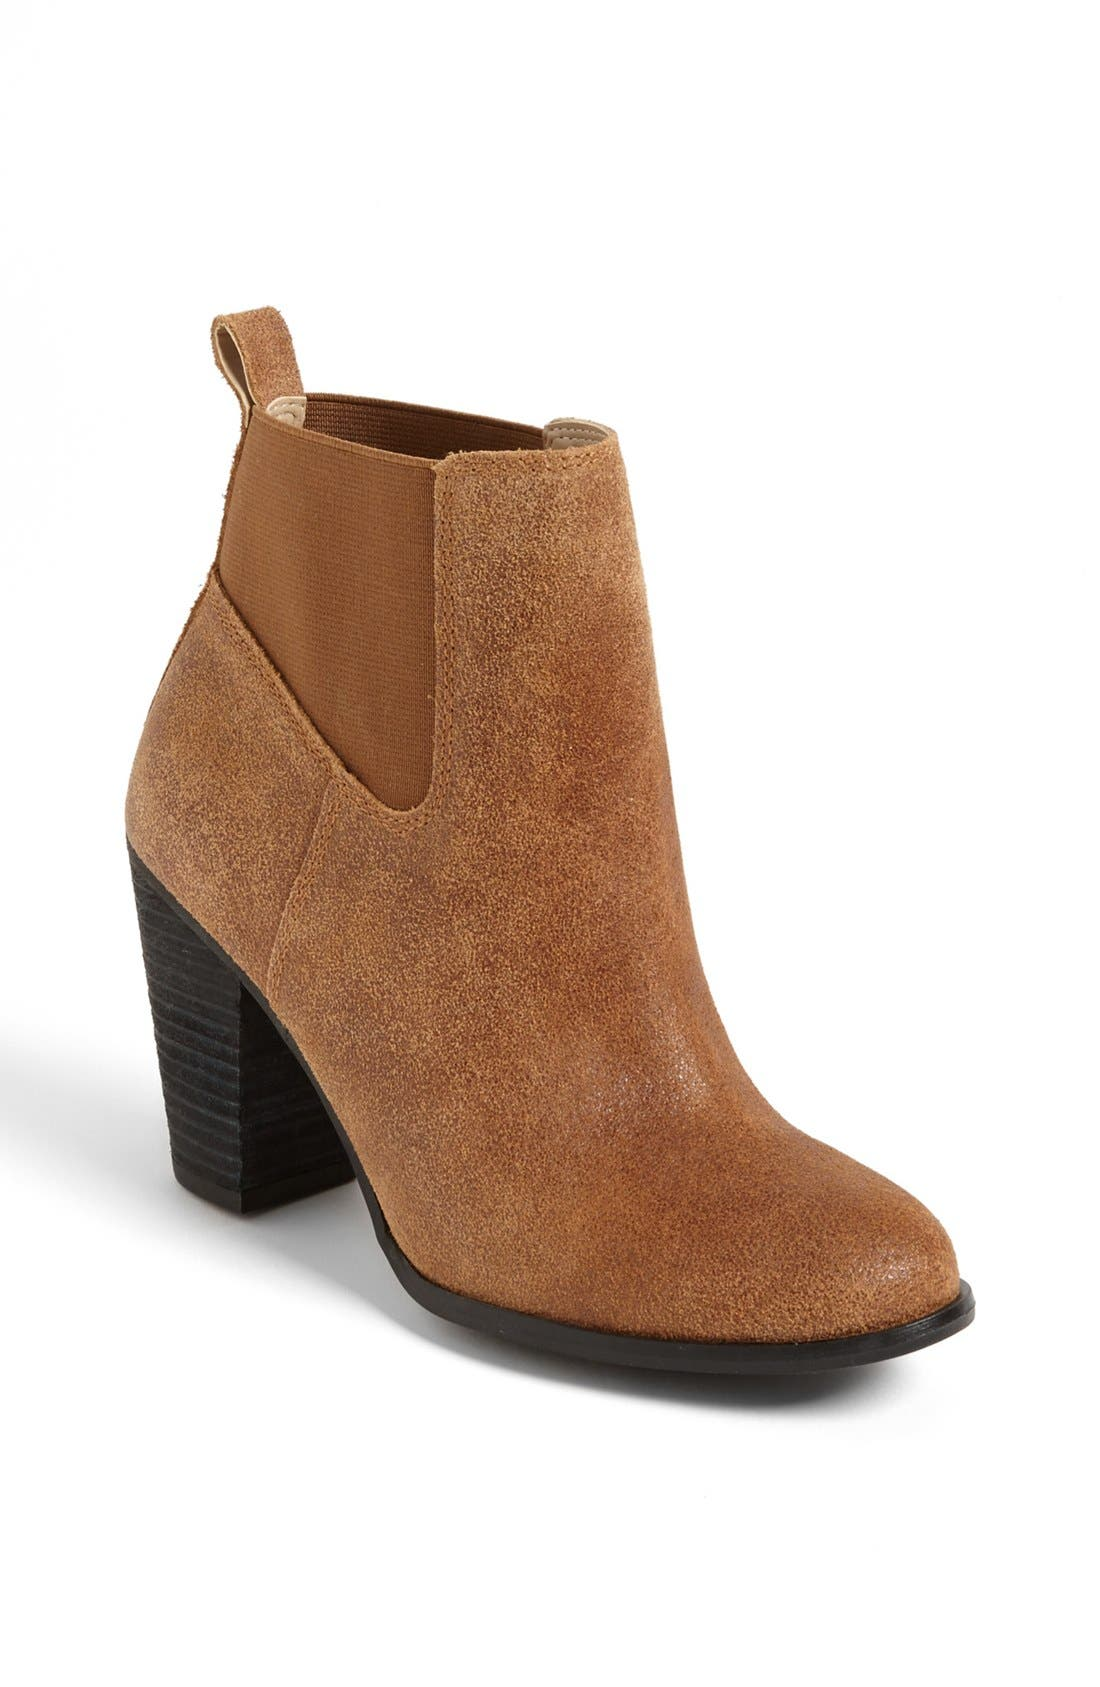 Alternate Image 1 Selected - Julianne Hough for Sole Society 'Giuliana' Bootie